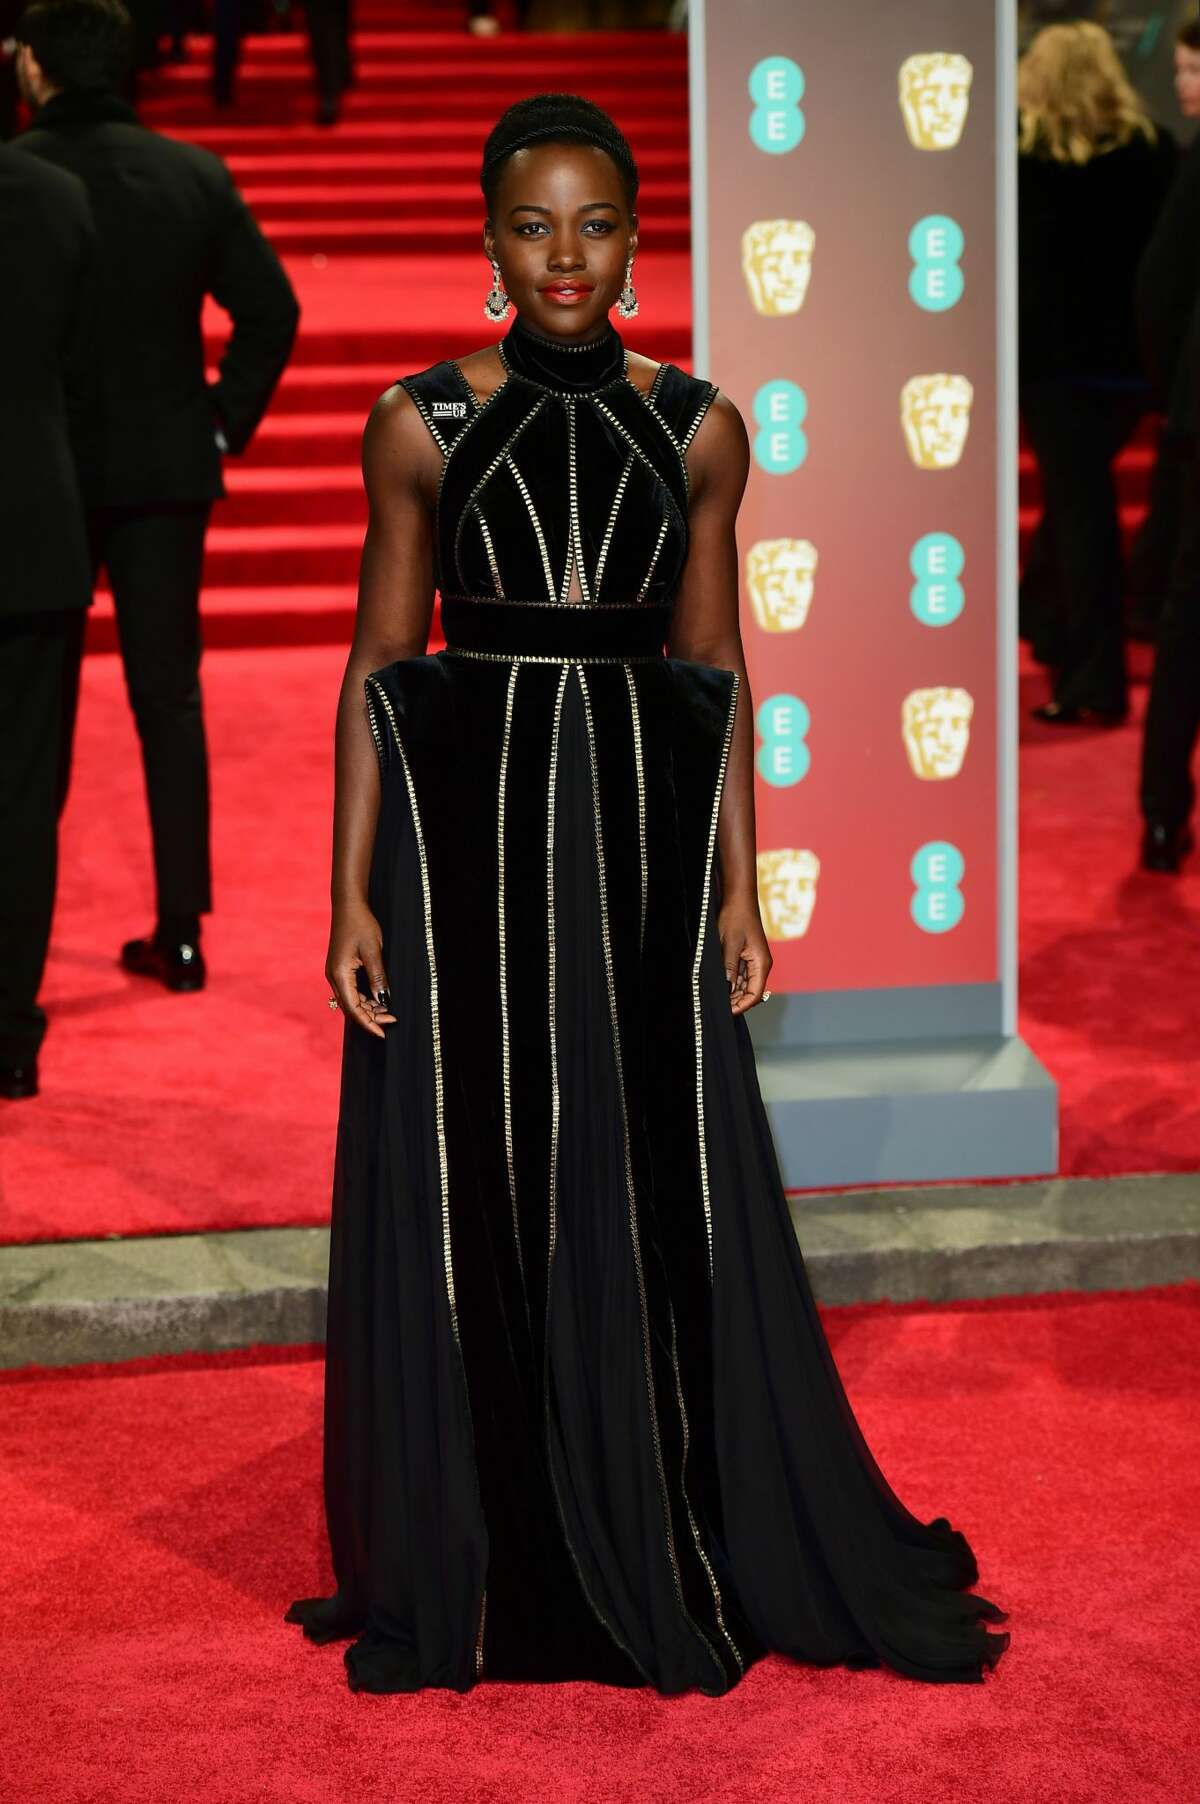 Best: Lupita Nyong'o's dress is strong and fierce... just like her.